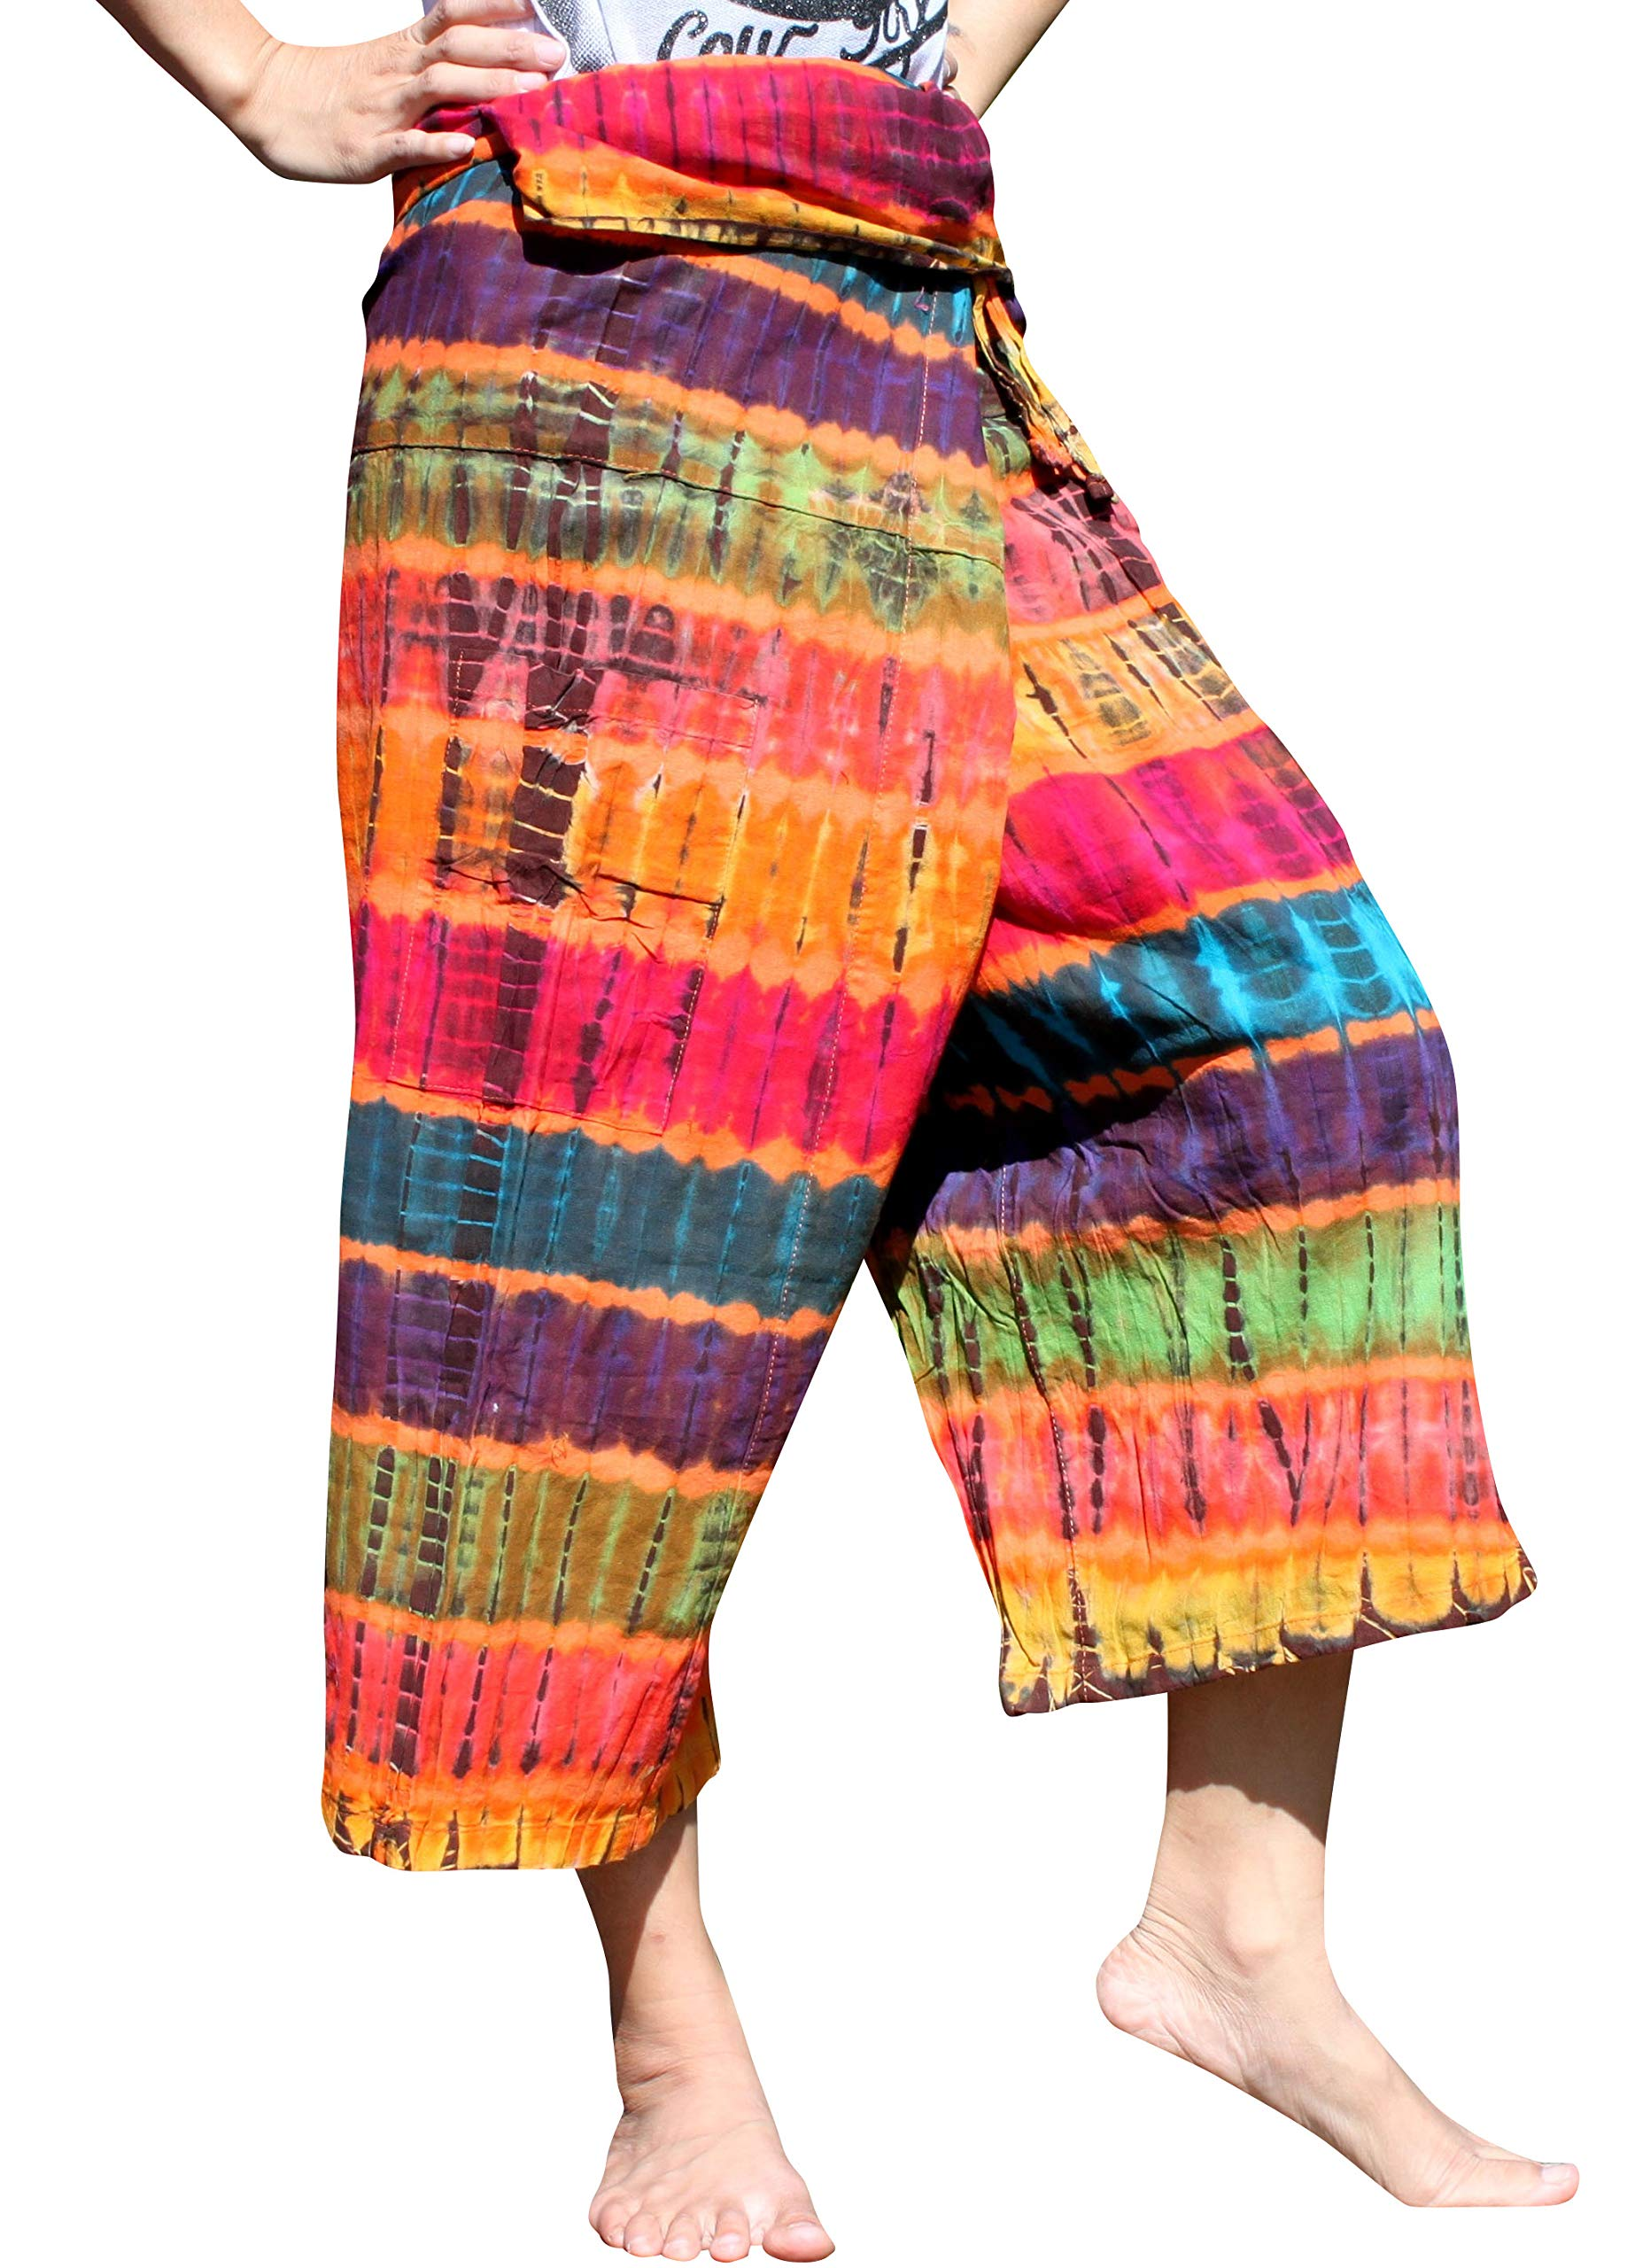 Full Funk Cotton Tie Dyed Natural Colorful Thai Fisherman Wrap 3/4 Leg Pants, Medium, Flame Orange by Full Funk